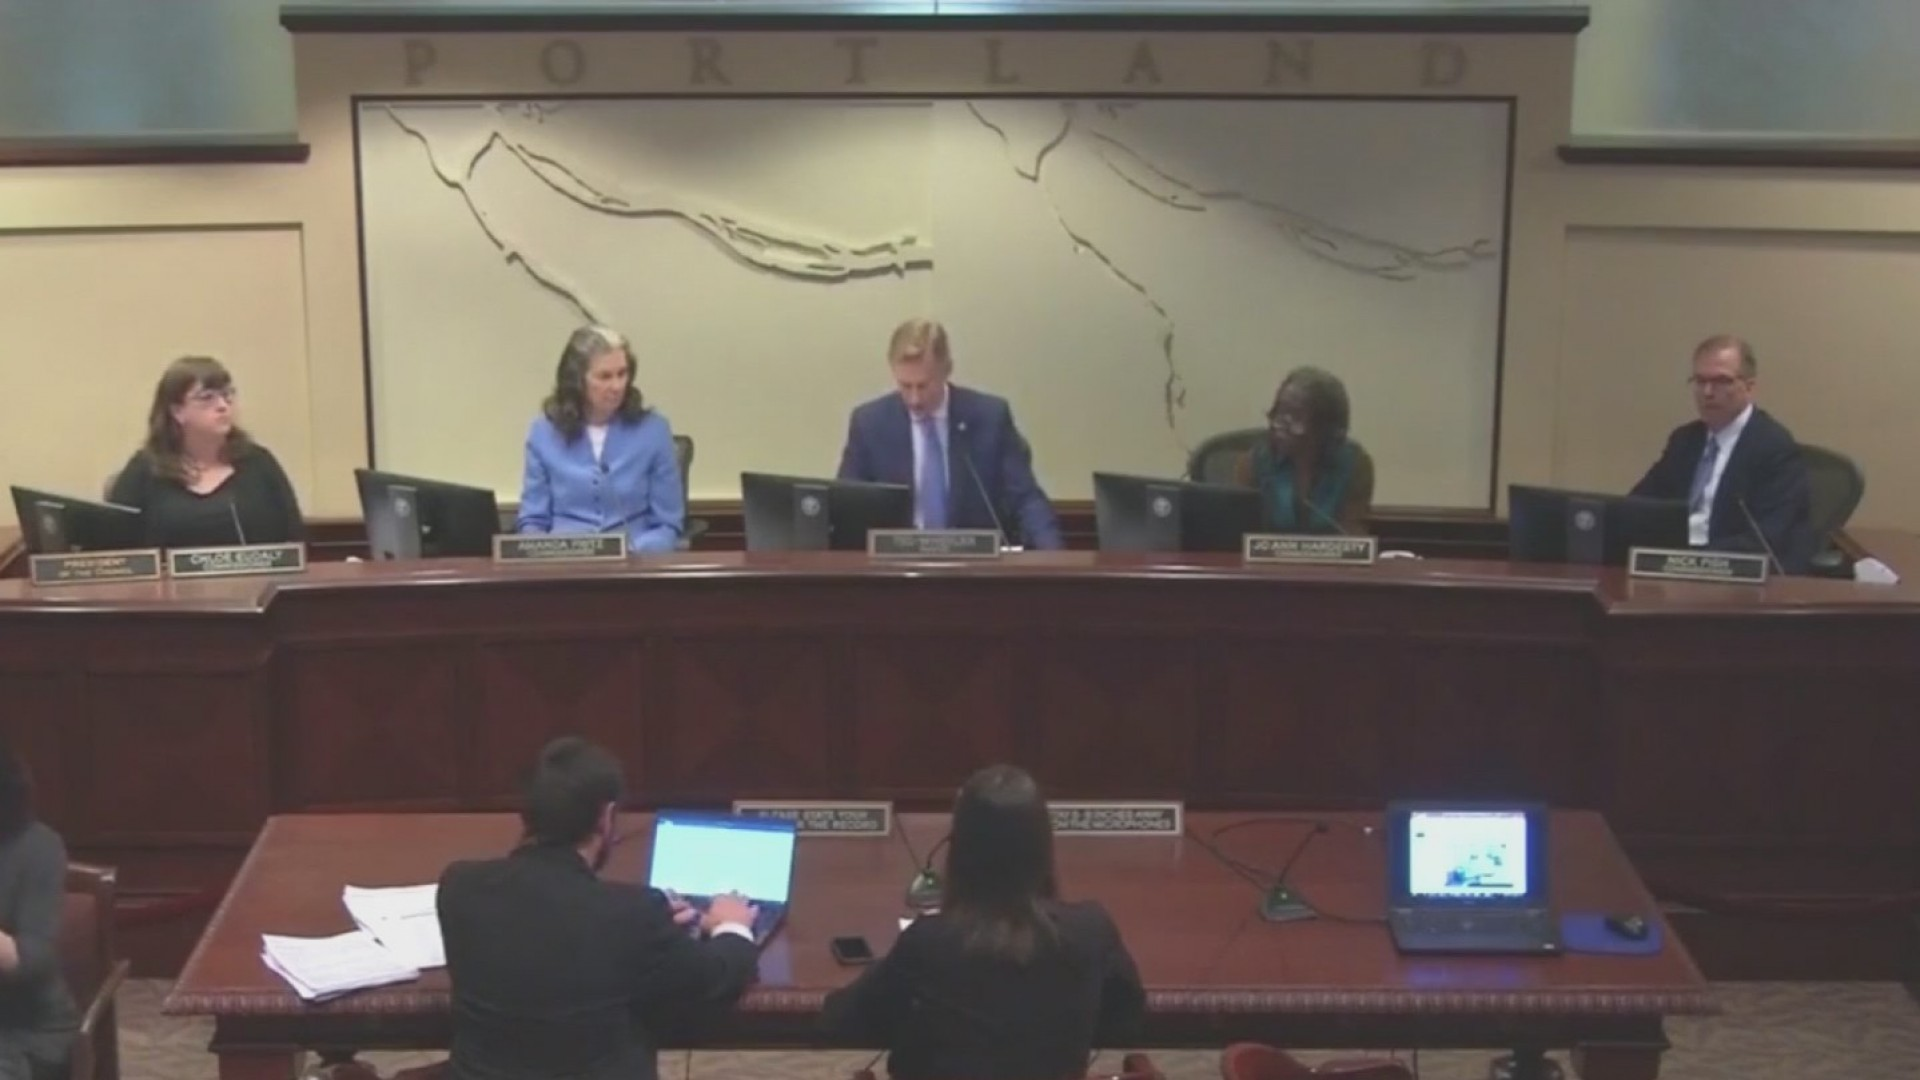 Budget battle brings heated exchange at City Hall